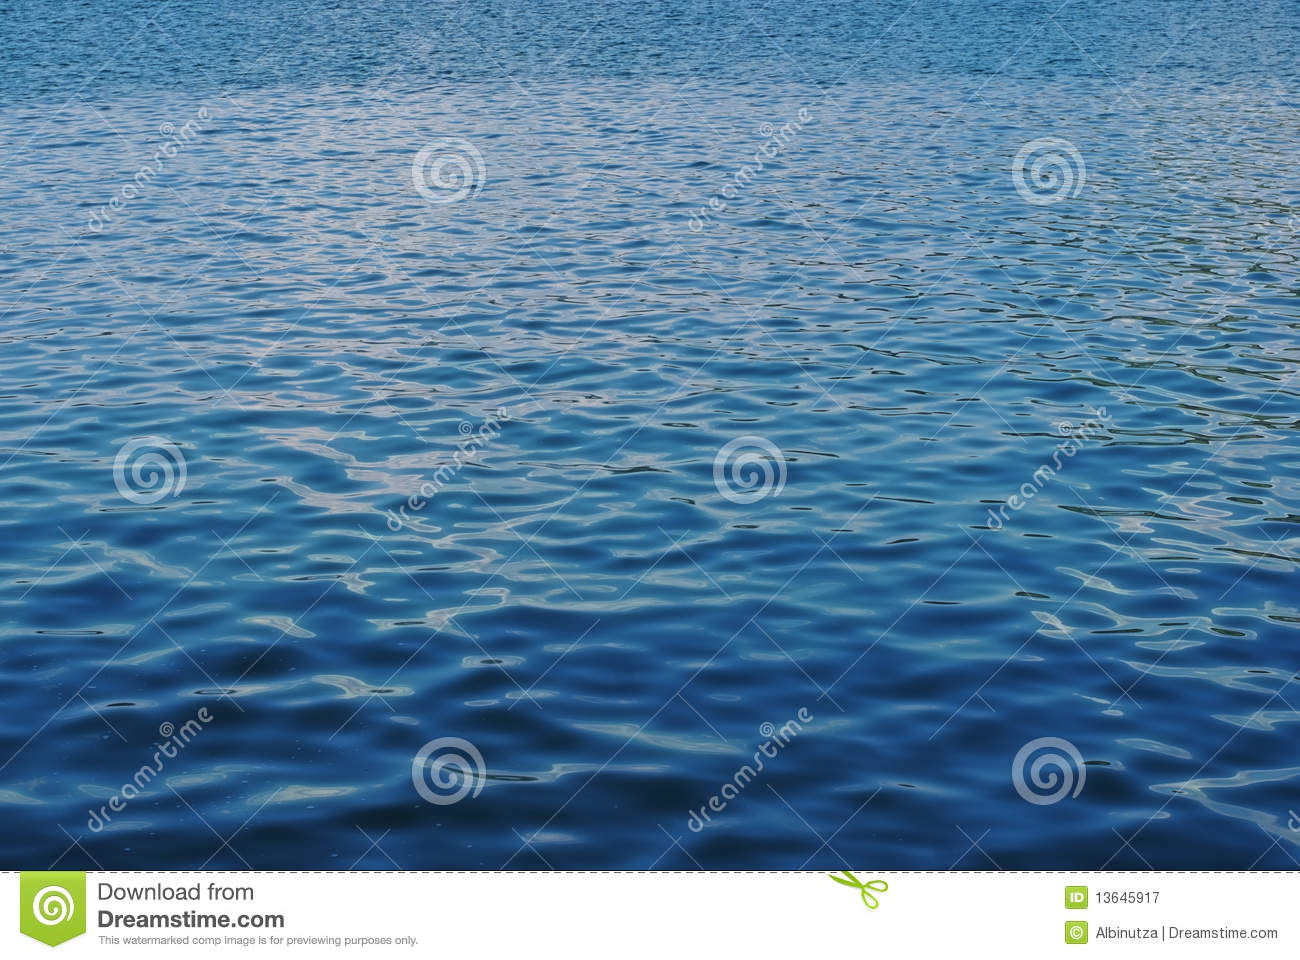 water surface wallpaper - photo #30